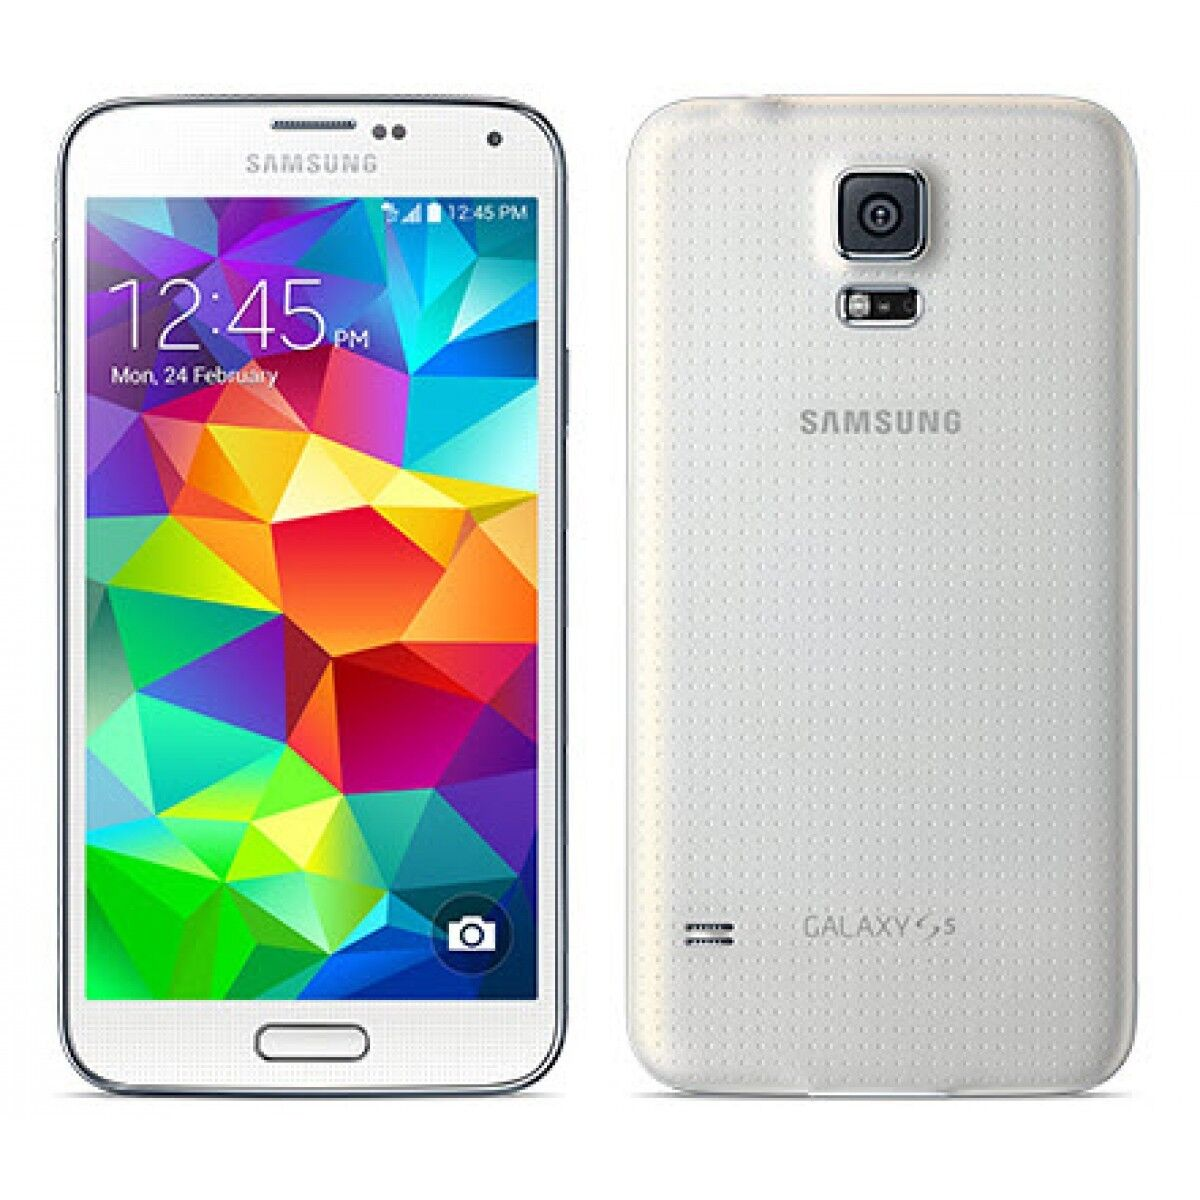 samsung s5 how to get voice messaging